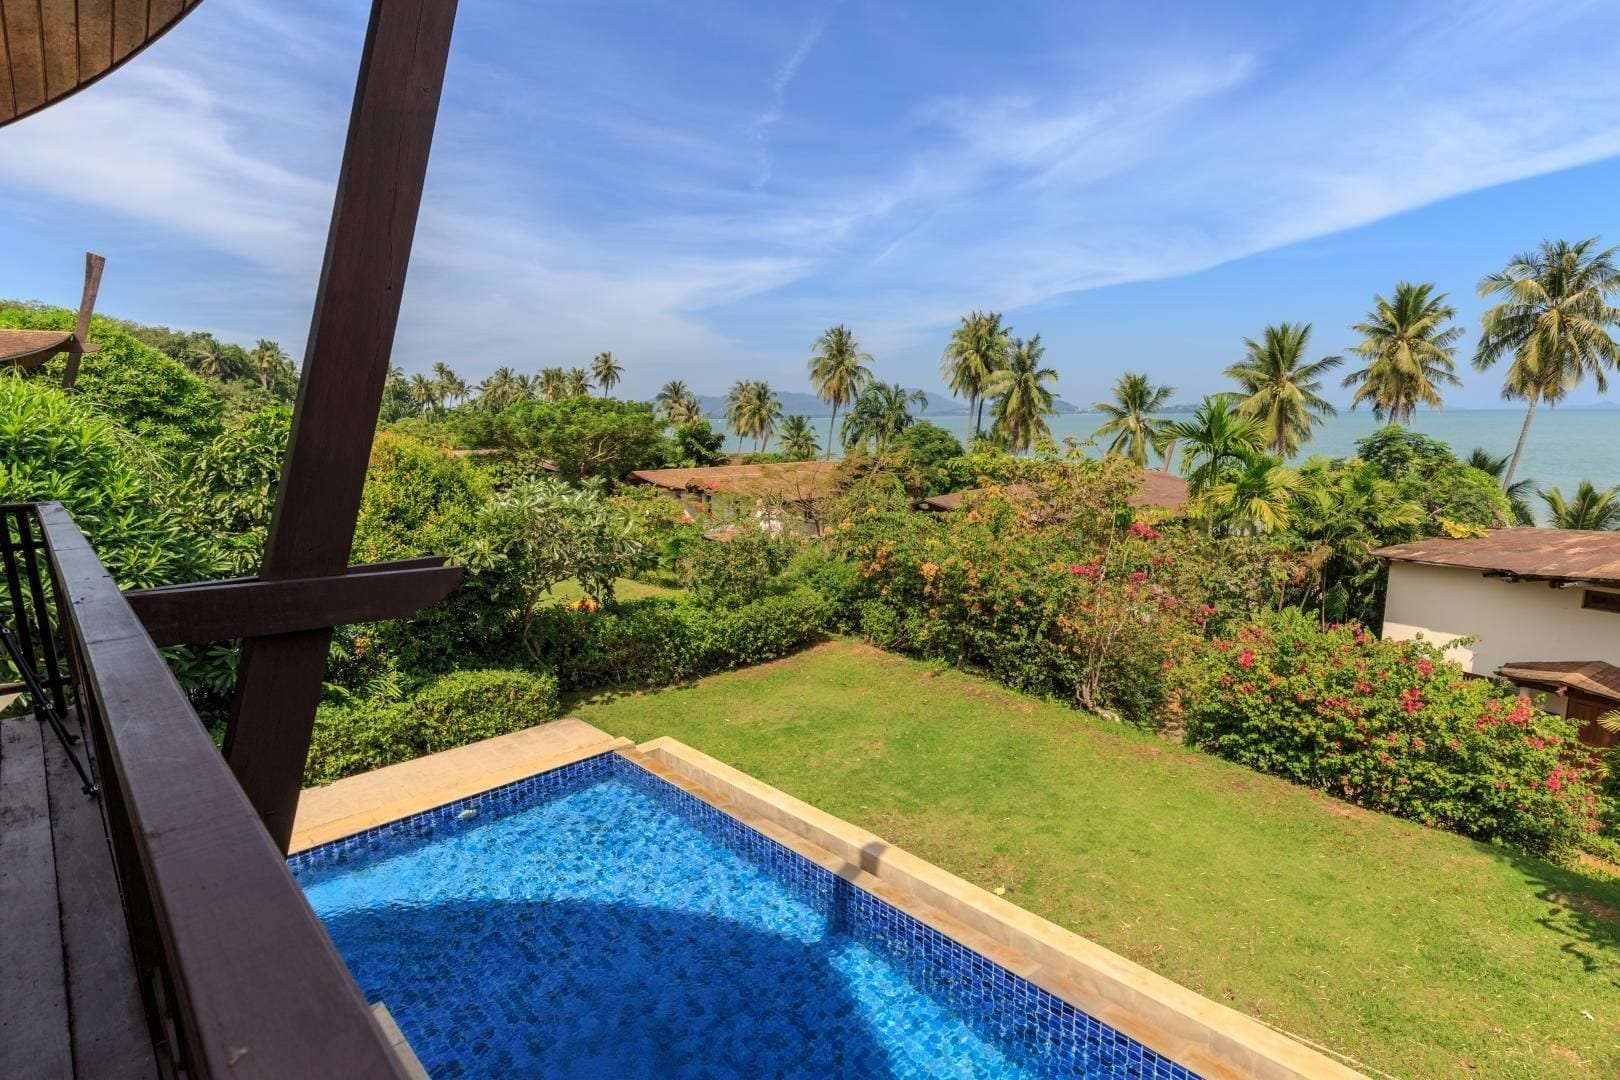 Sea View Villa, Coconut Island, Phuket V29, 3 Bed